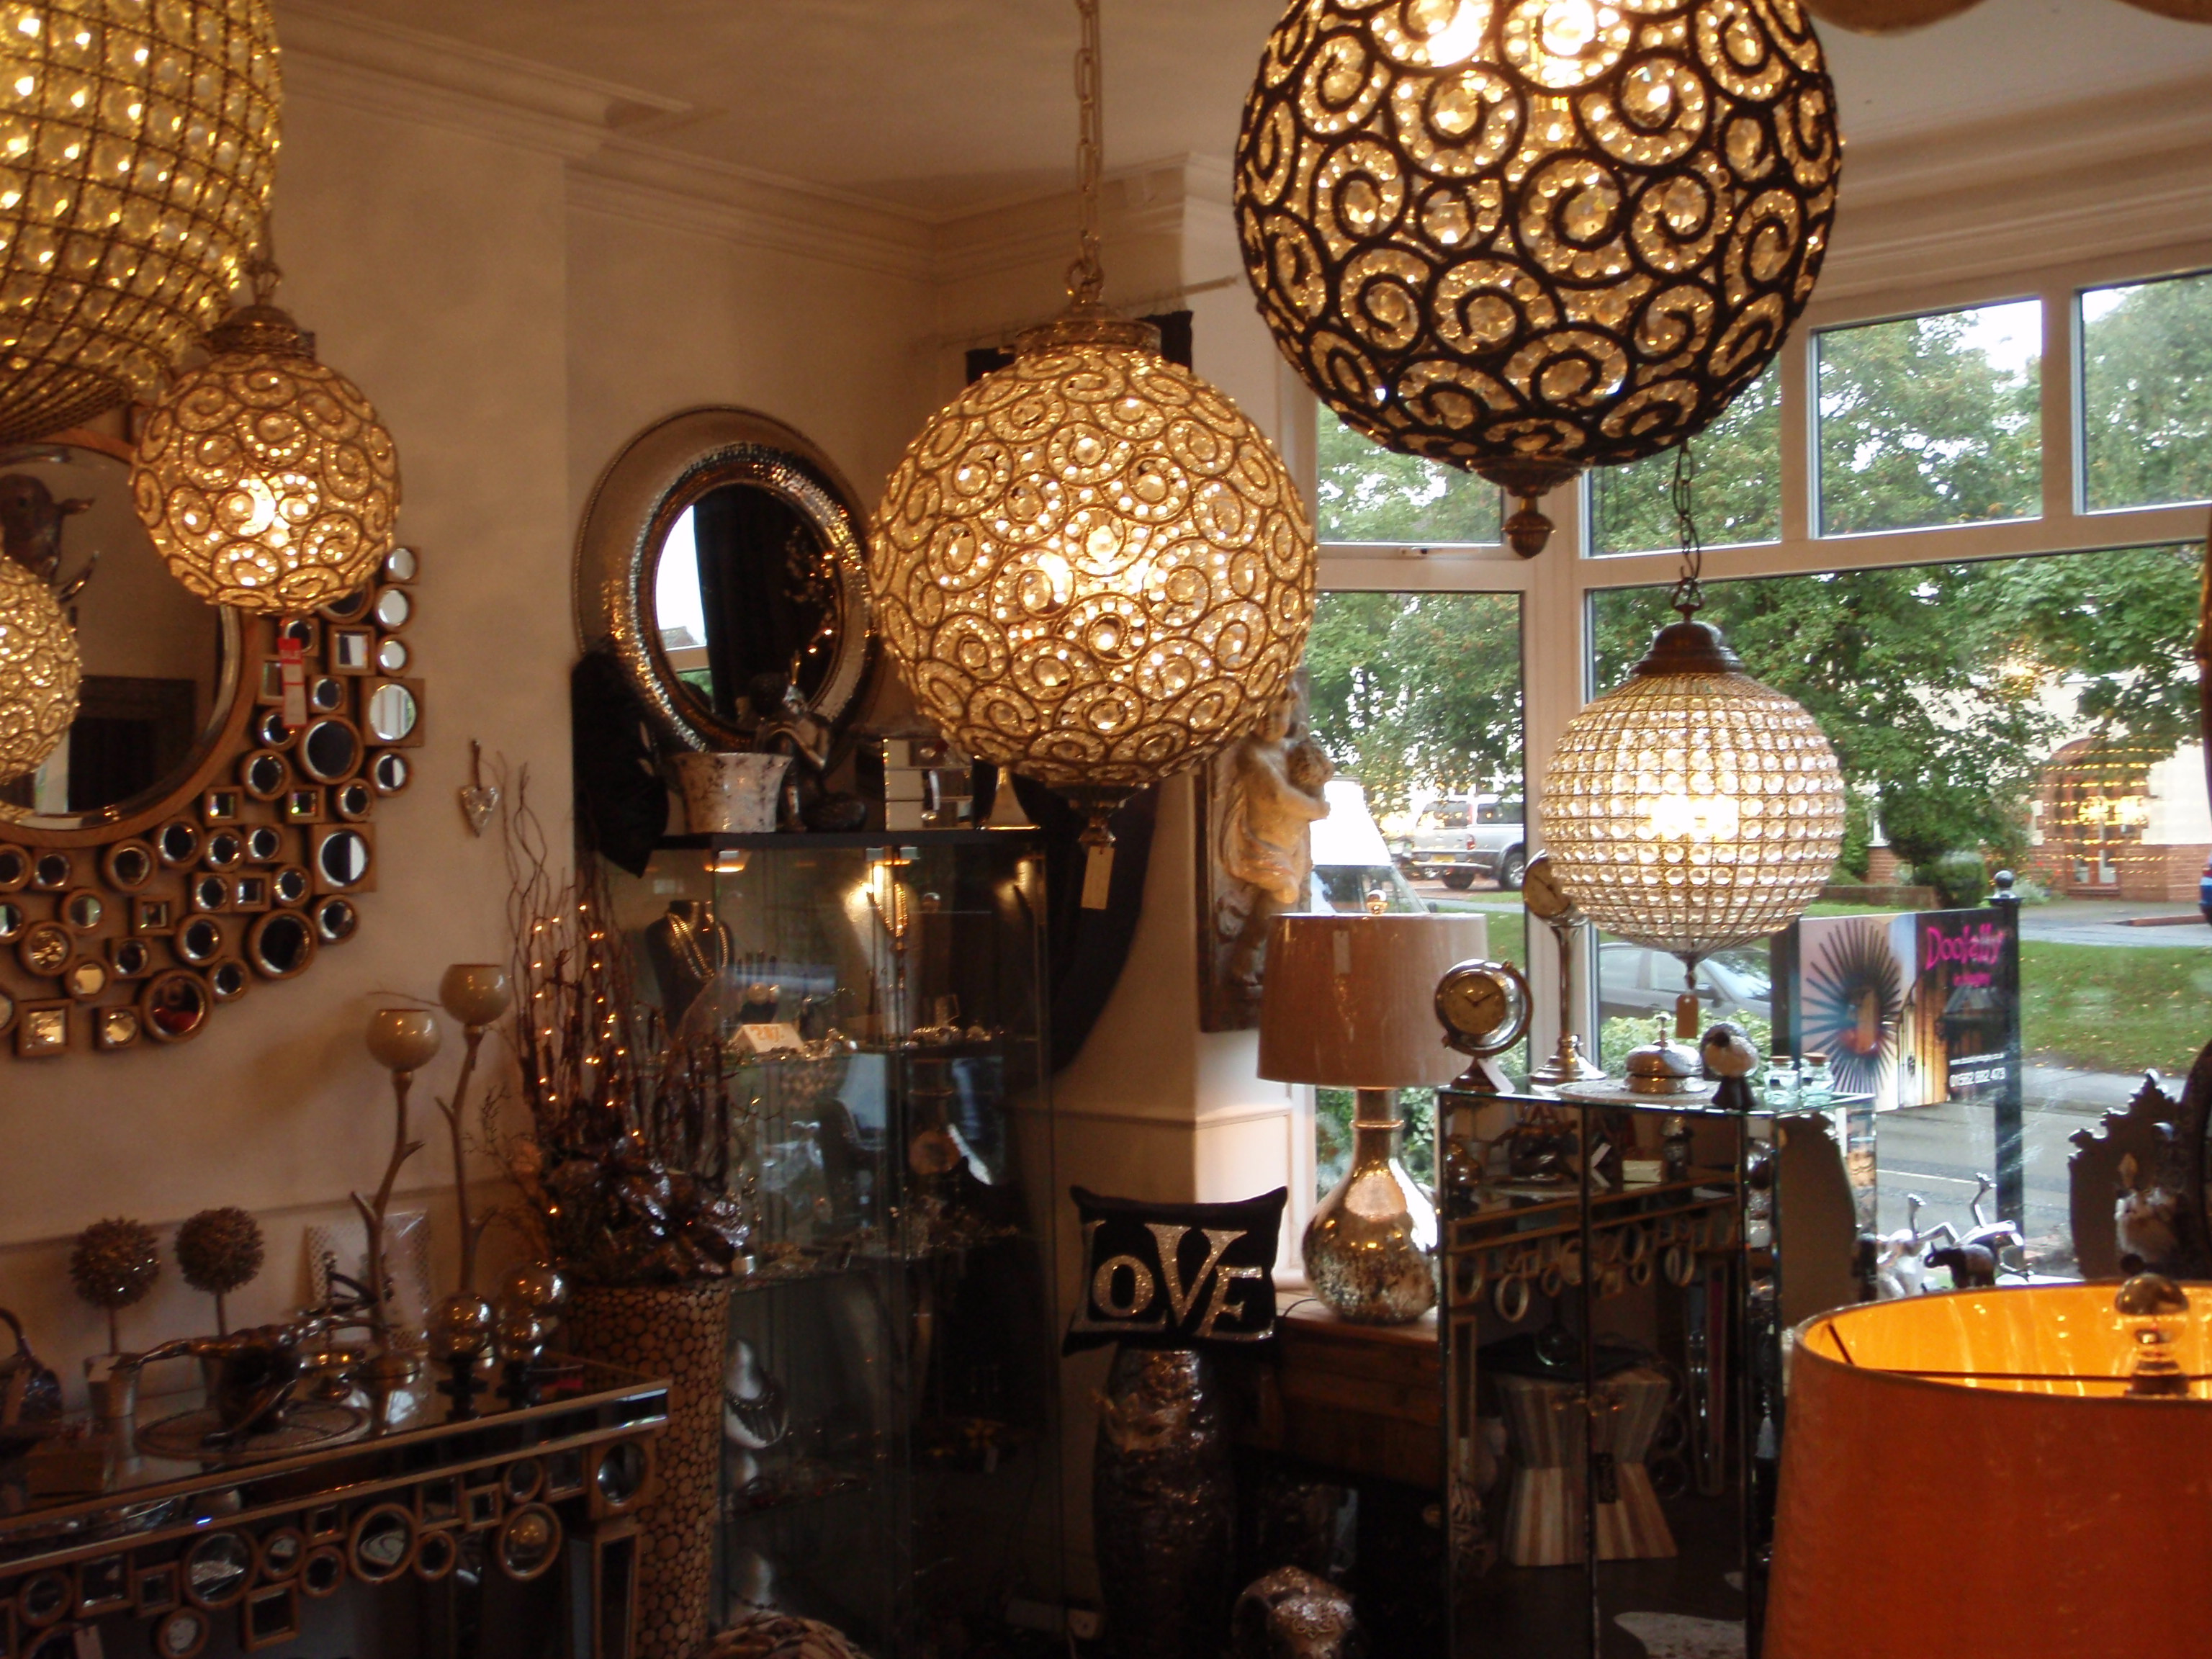 Interior and Giftware Boutique Hagley, Worcestershire